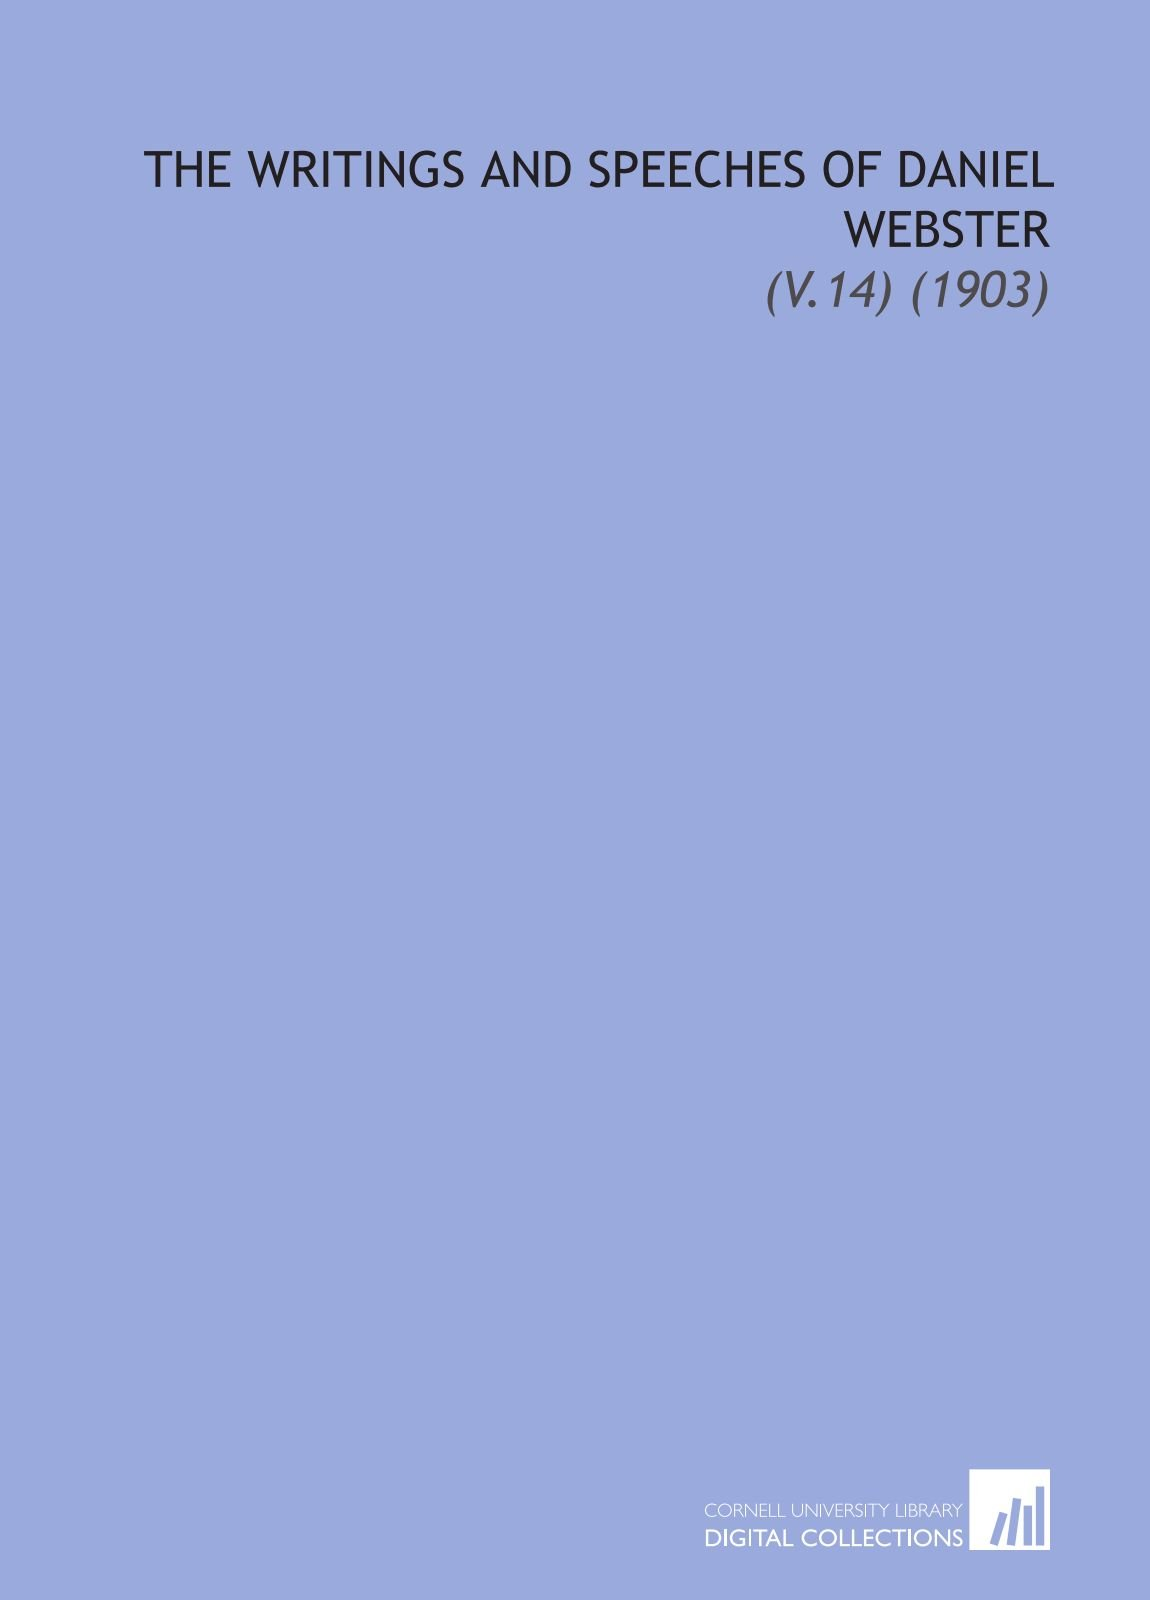 The Writings and Speeches of Daniel Webster: (V.14) (1903) PDF